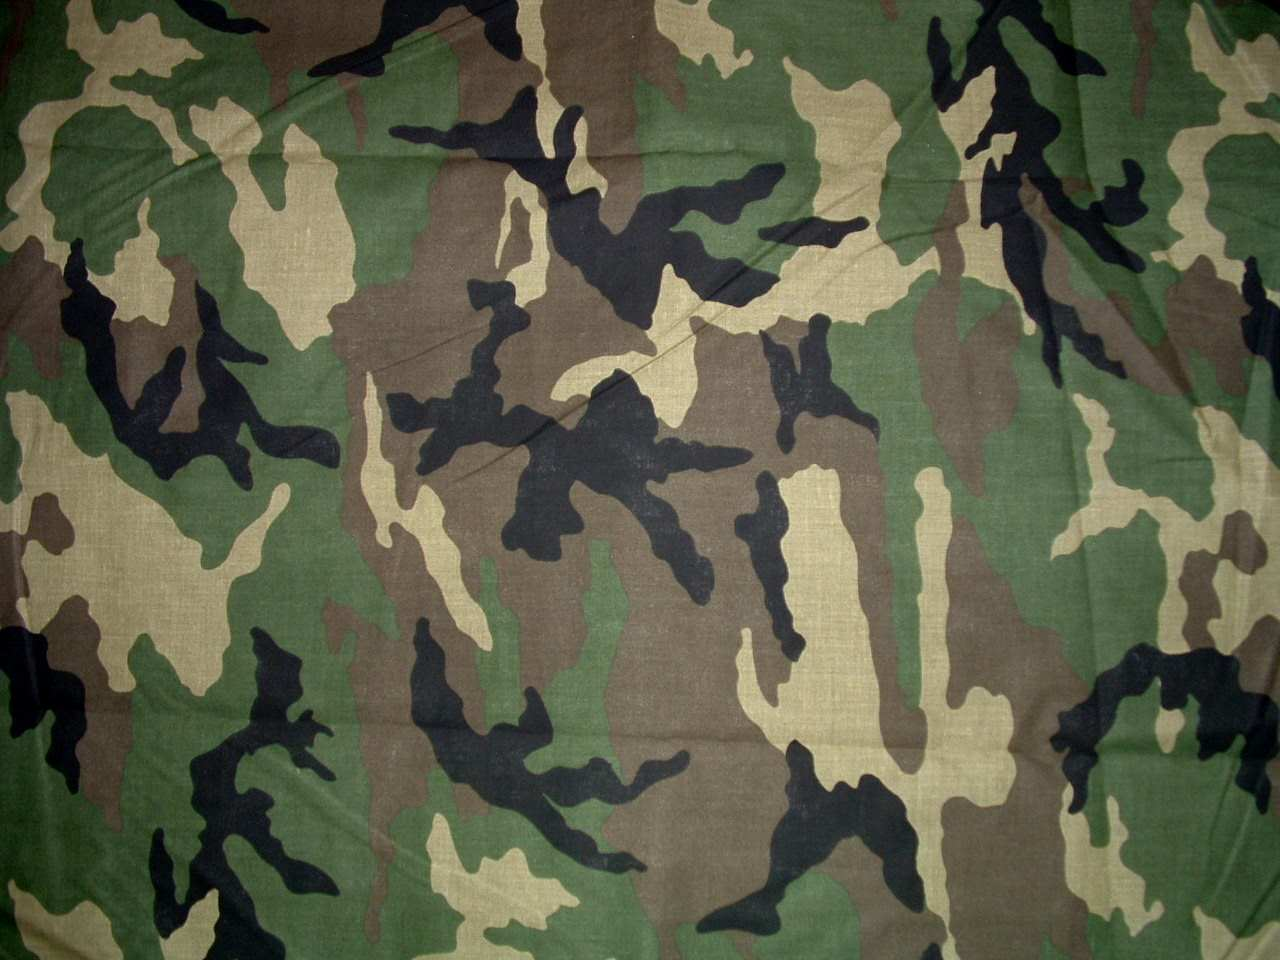 Military Backgrounds Pictures - Wallpaper Cave